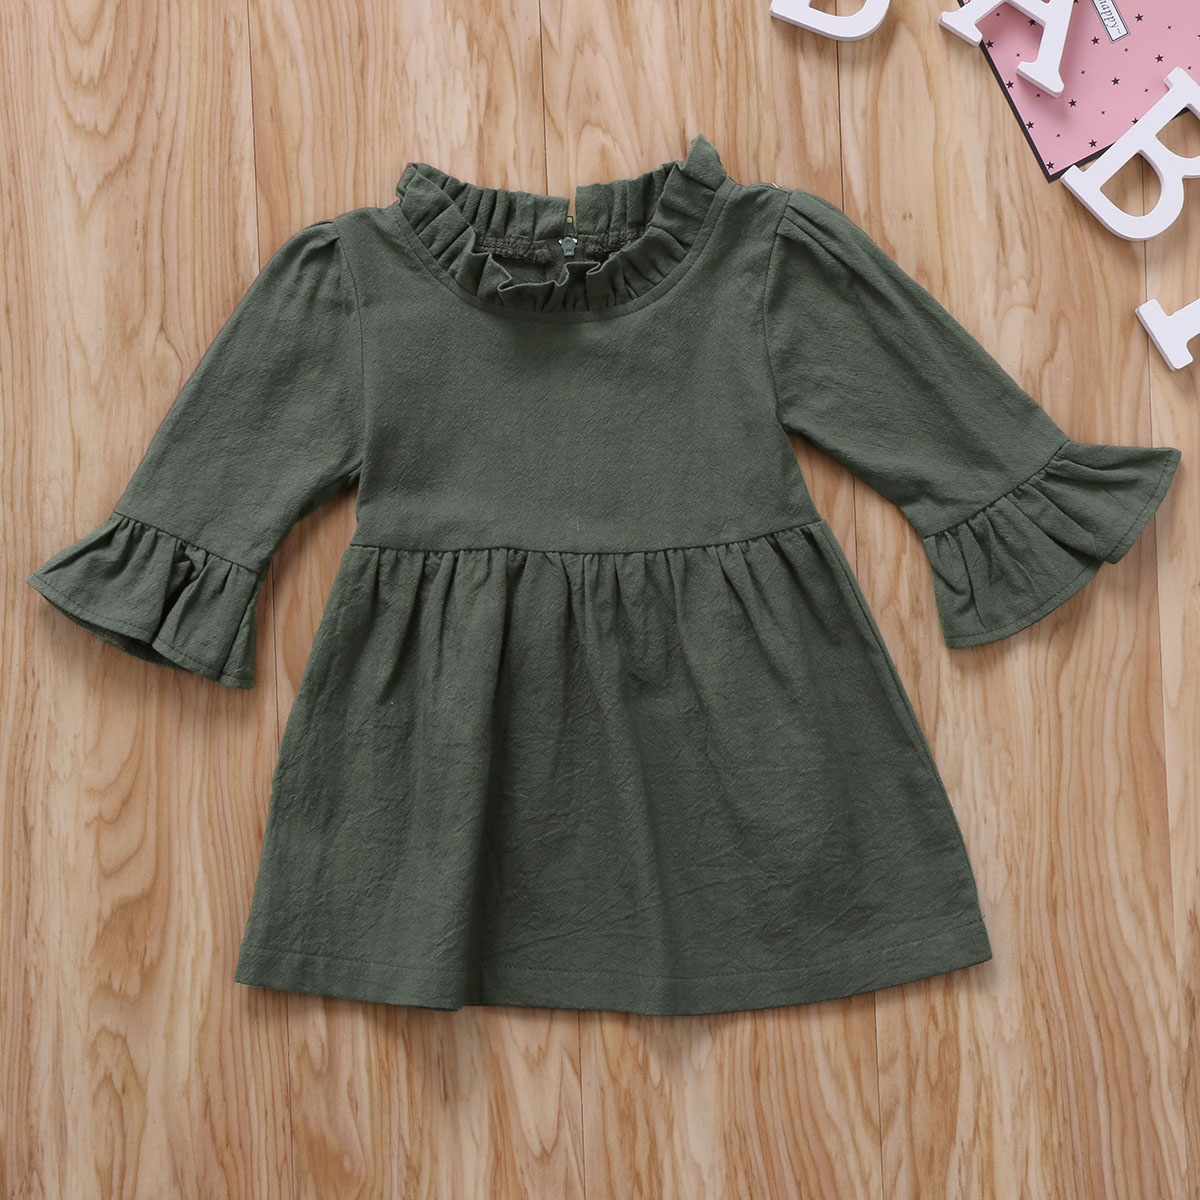 Infant Toddler Girls Long Sleeve Outfits 0-4T